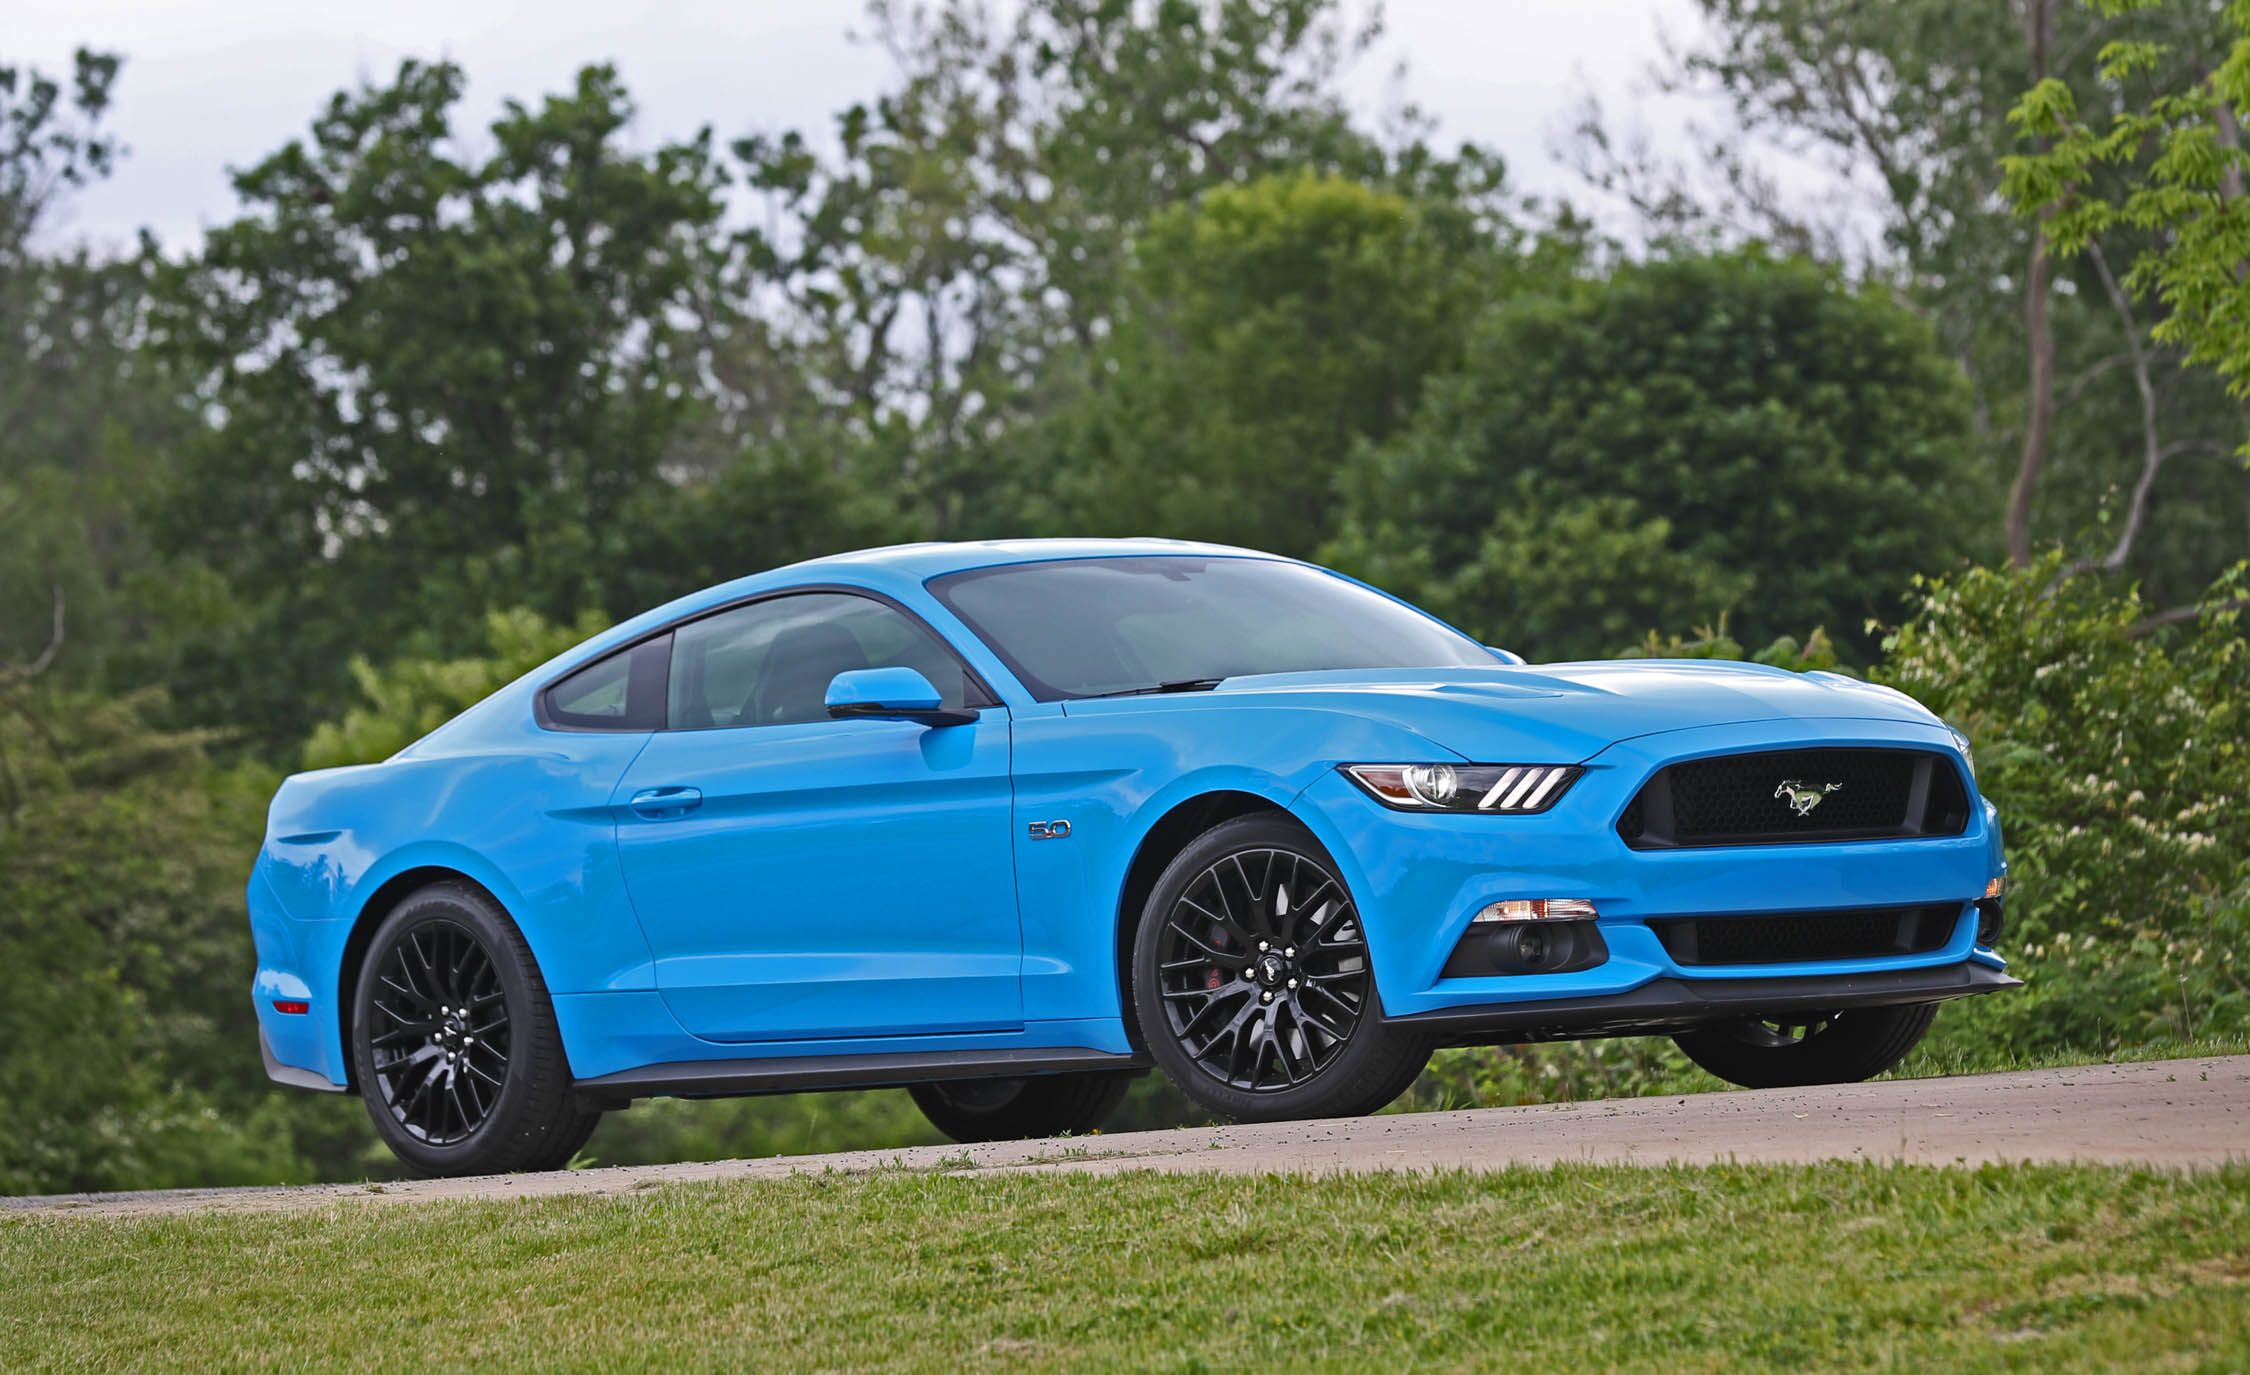 Ford Mustang Reviews | Ford Mustang Price, Photos, and Specs | Car and Driver